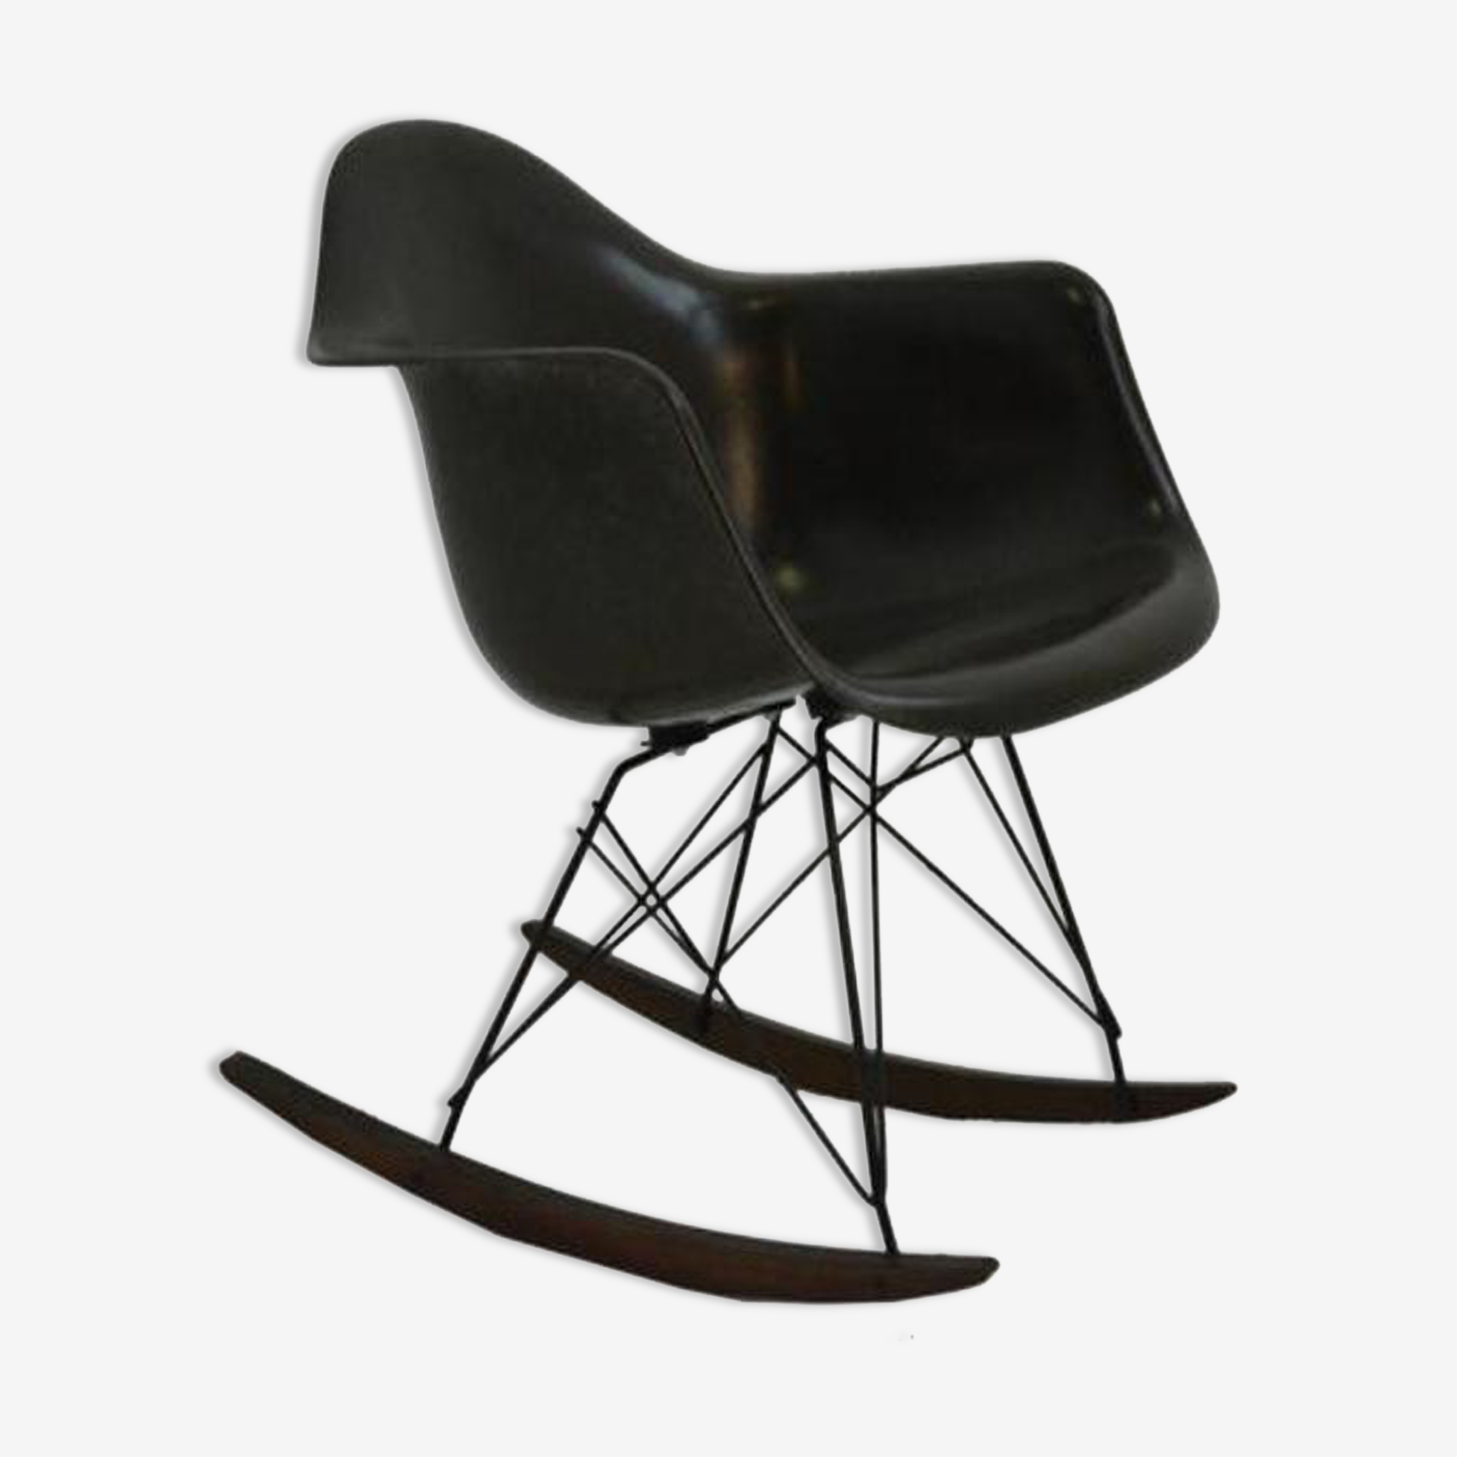 """Rocking chair """"rar"""" by Charles and Ray Eames"""